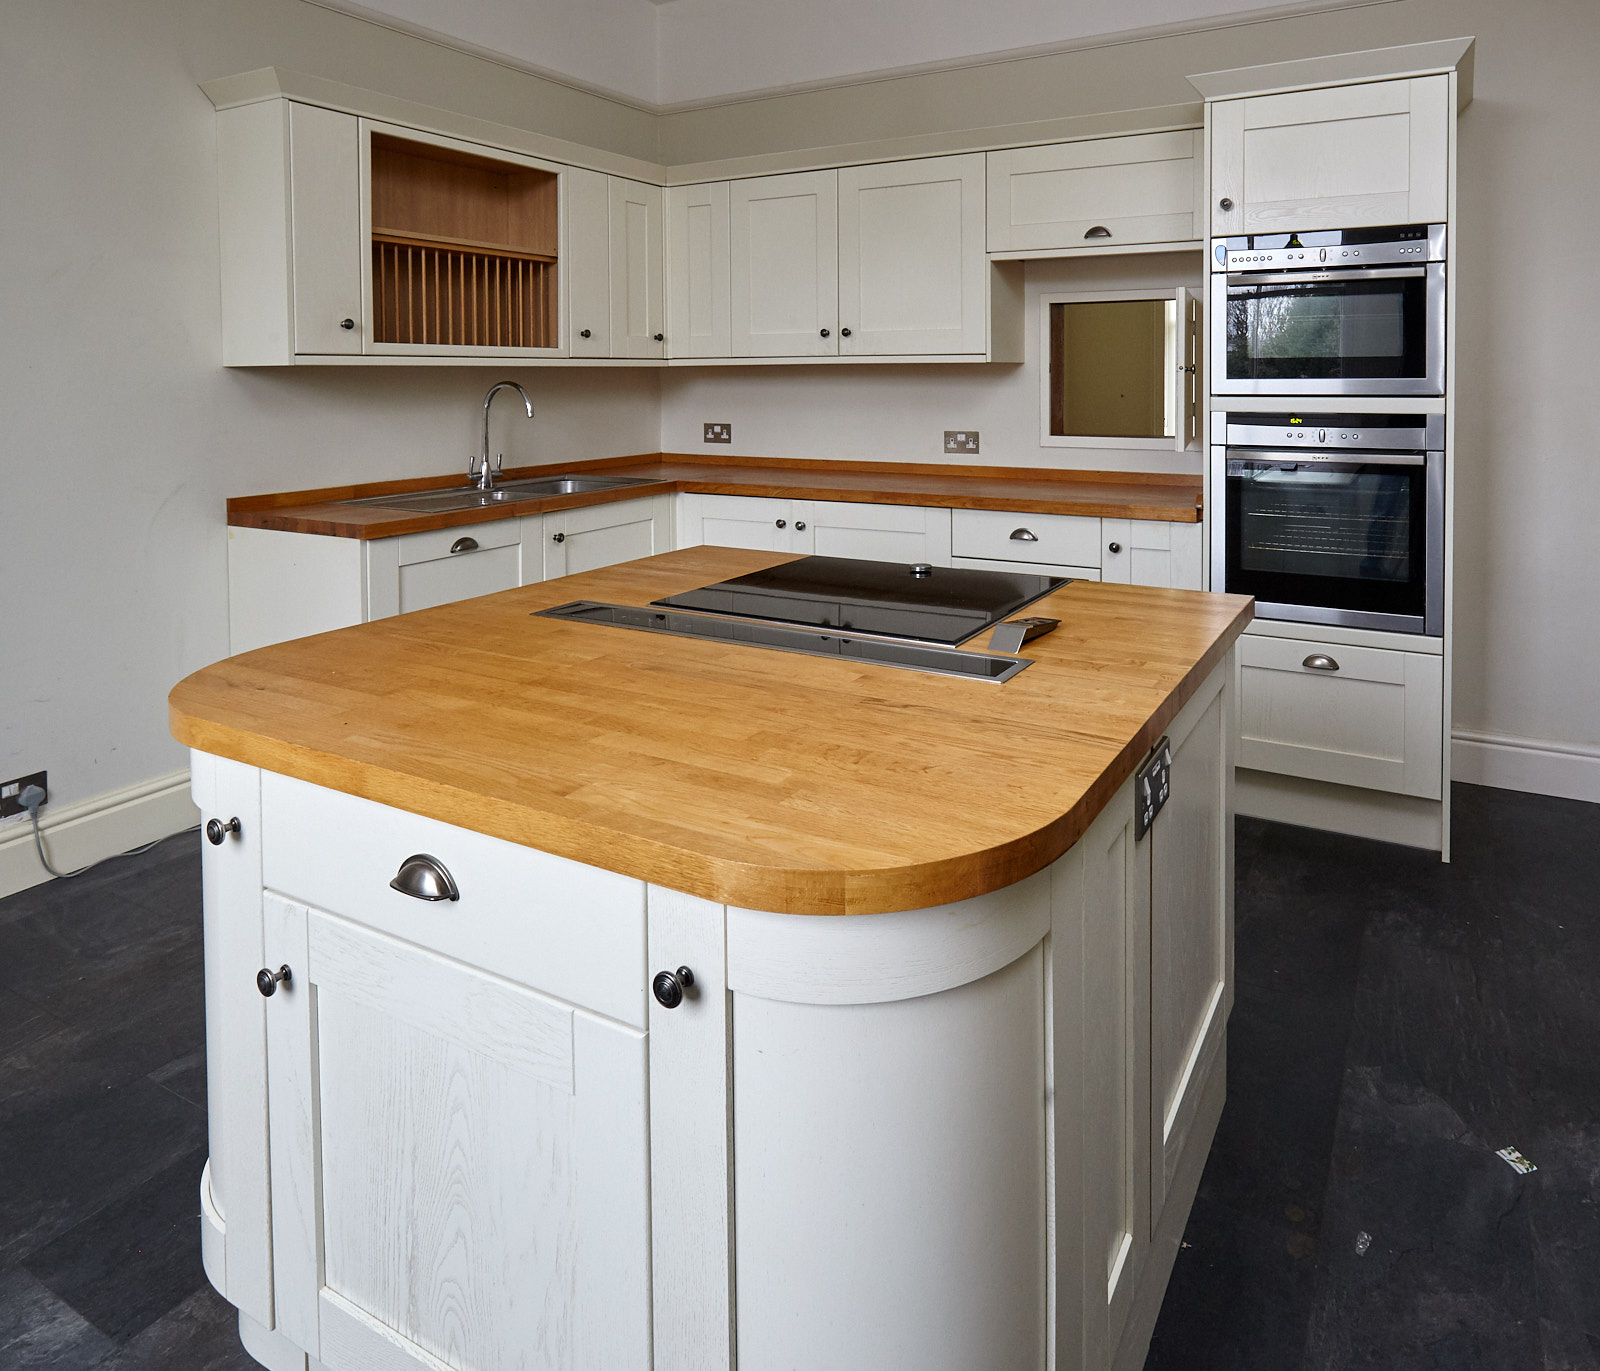 Used Kitchen Island For Sale: Modern Painted Shaker Style Used Kitchen With Island